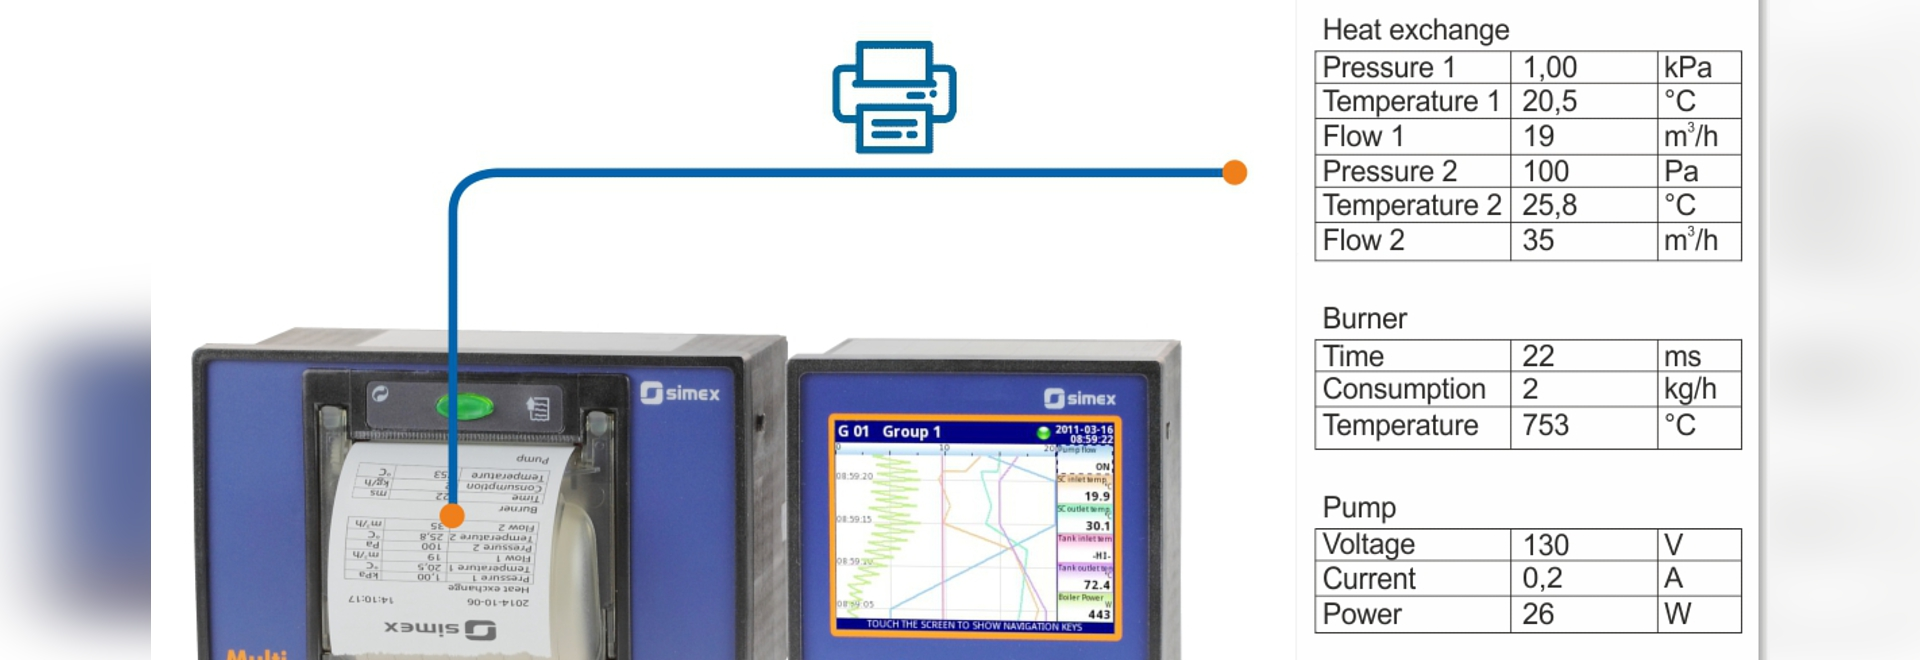 Application example #1: Multichannel recorder/controller featuring the thermal panel printer